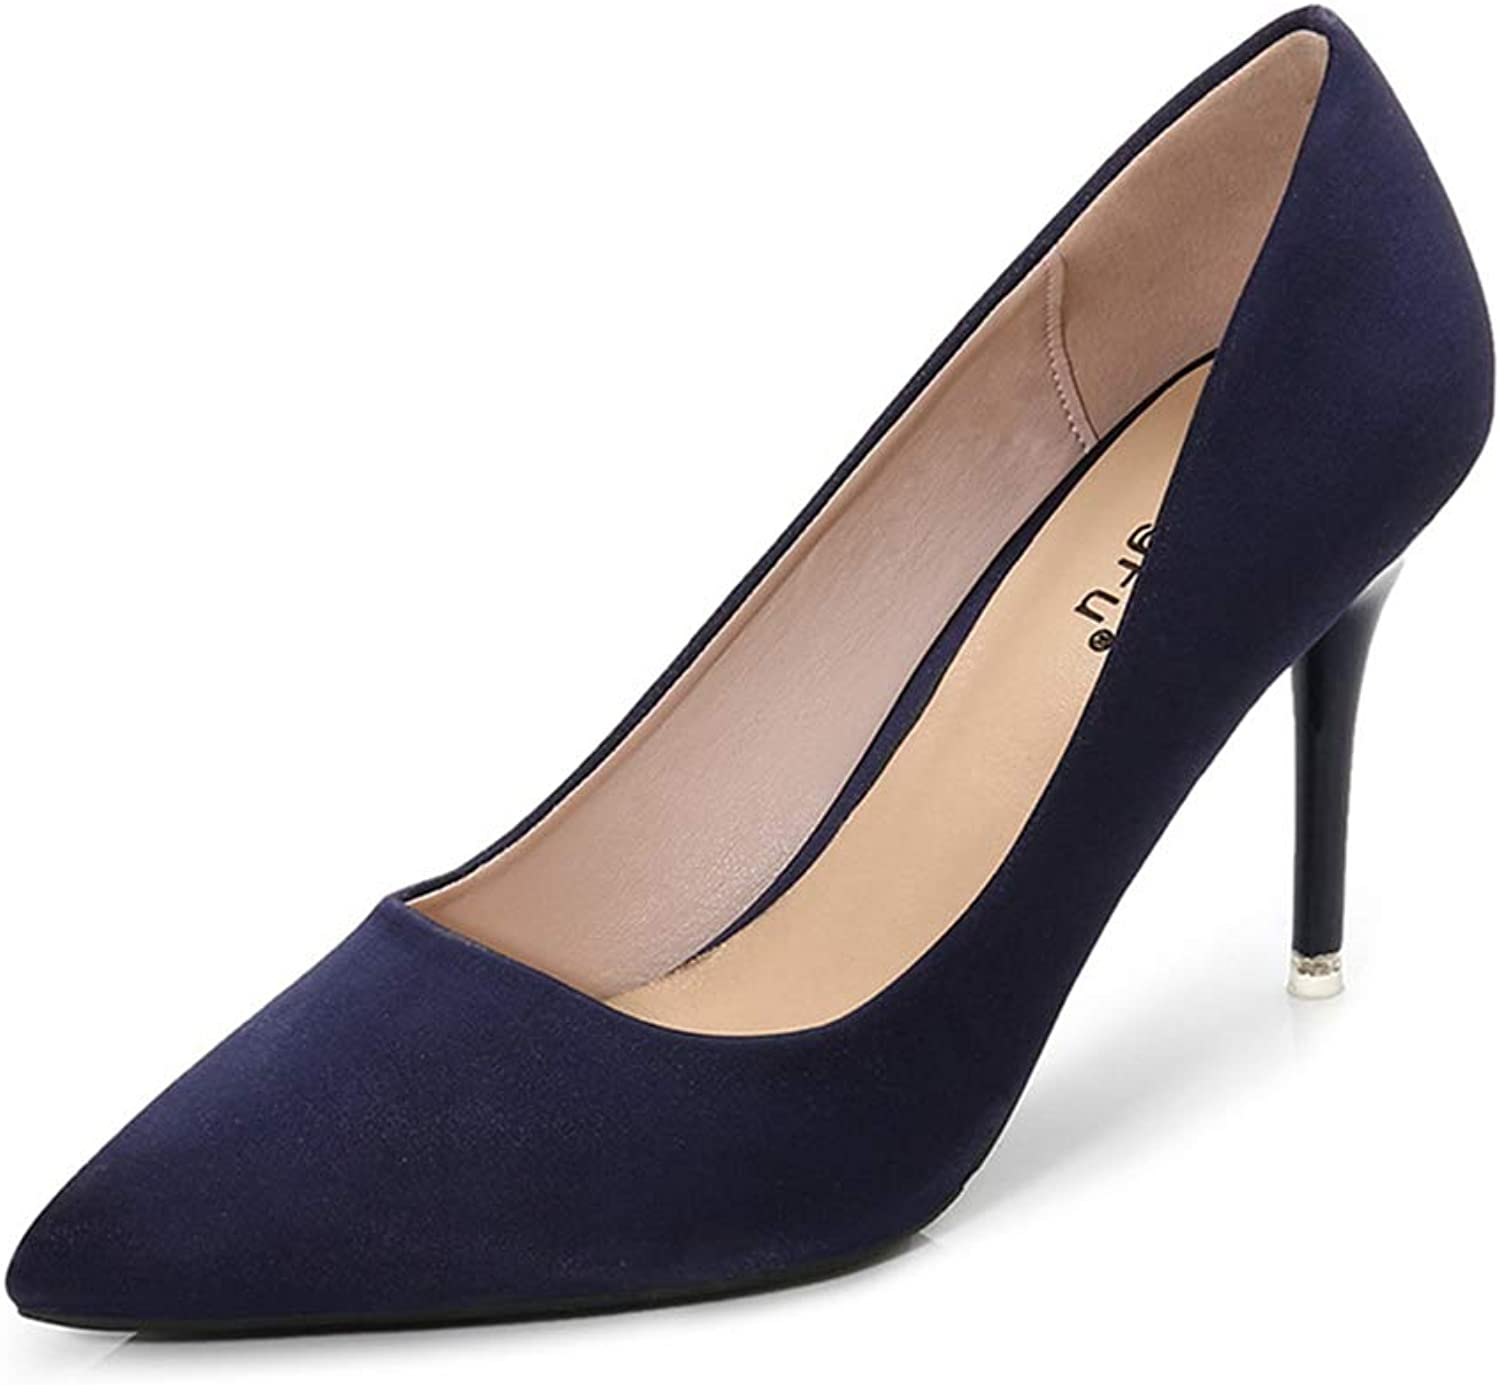 Sam Carle Womens Pumps,Solid color High Thin Heel Pointed Toe Sexy Wedding shoes